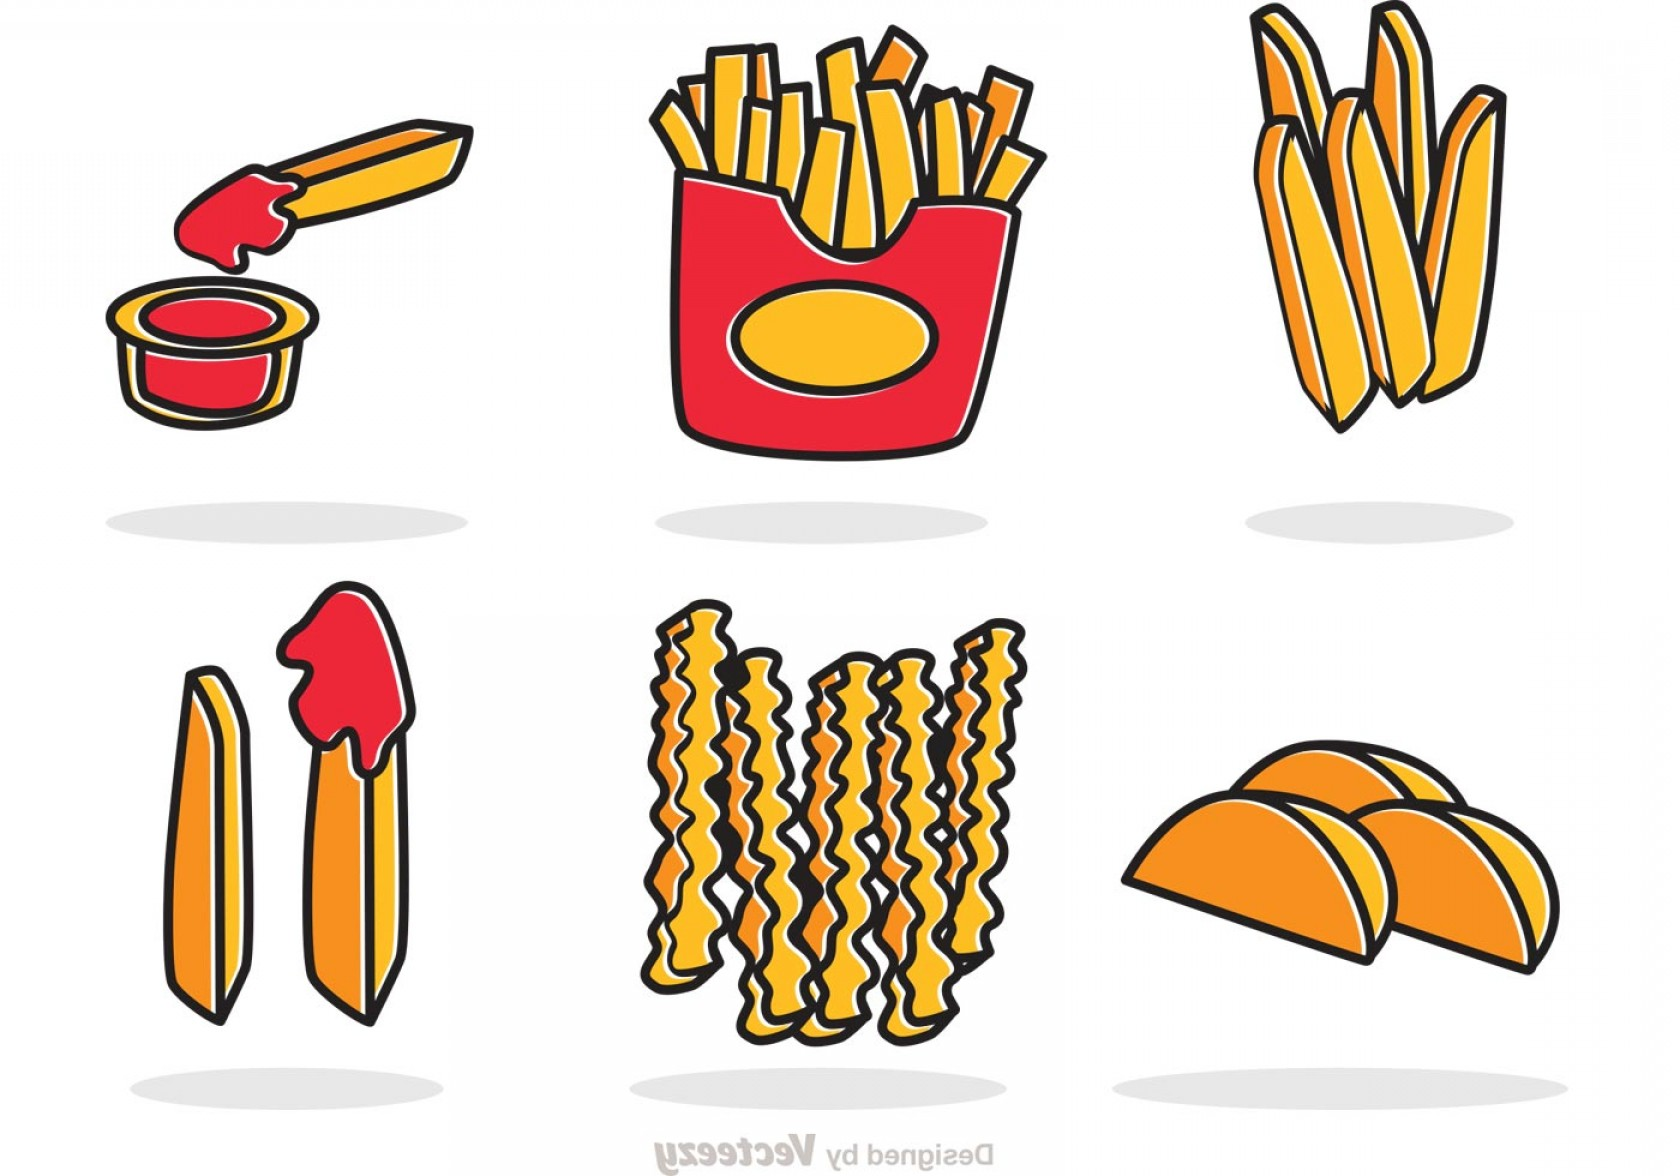 Fries Vector: Set Of French Fries Vector